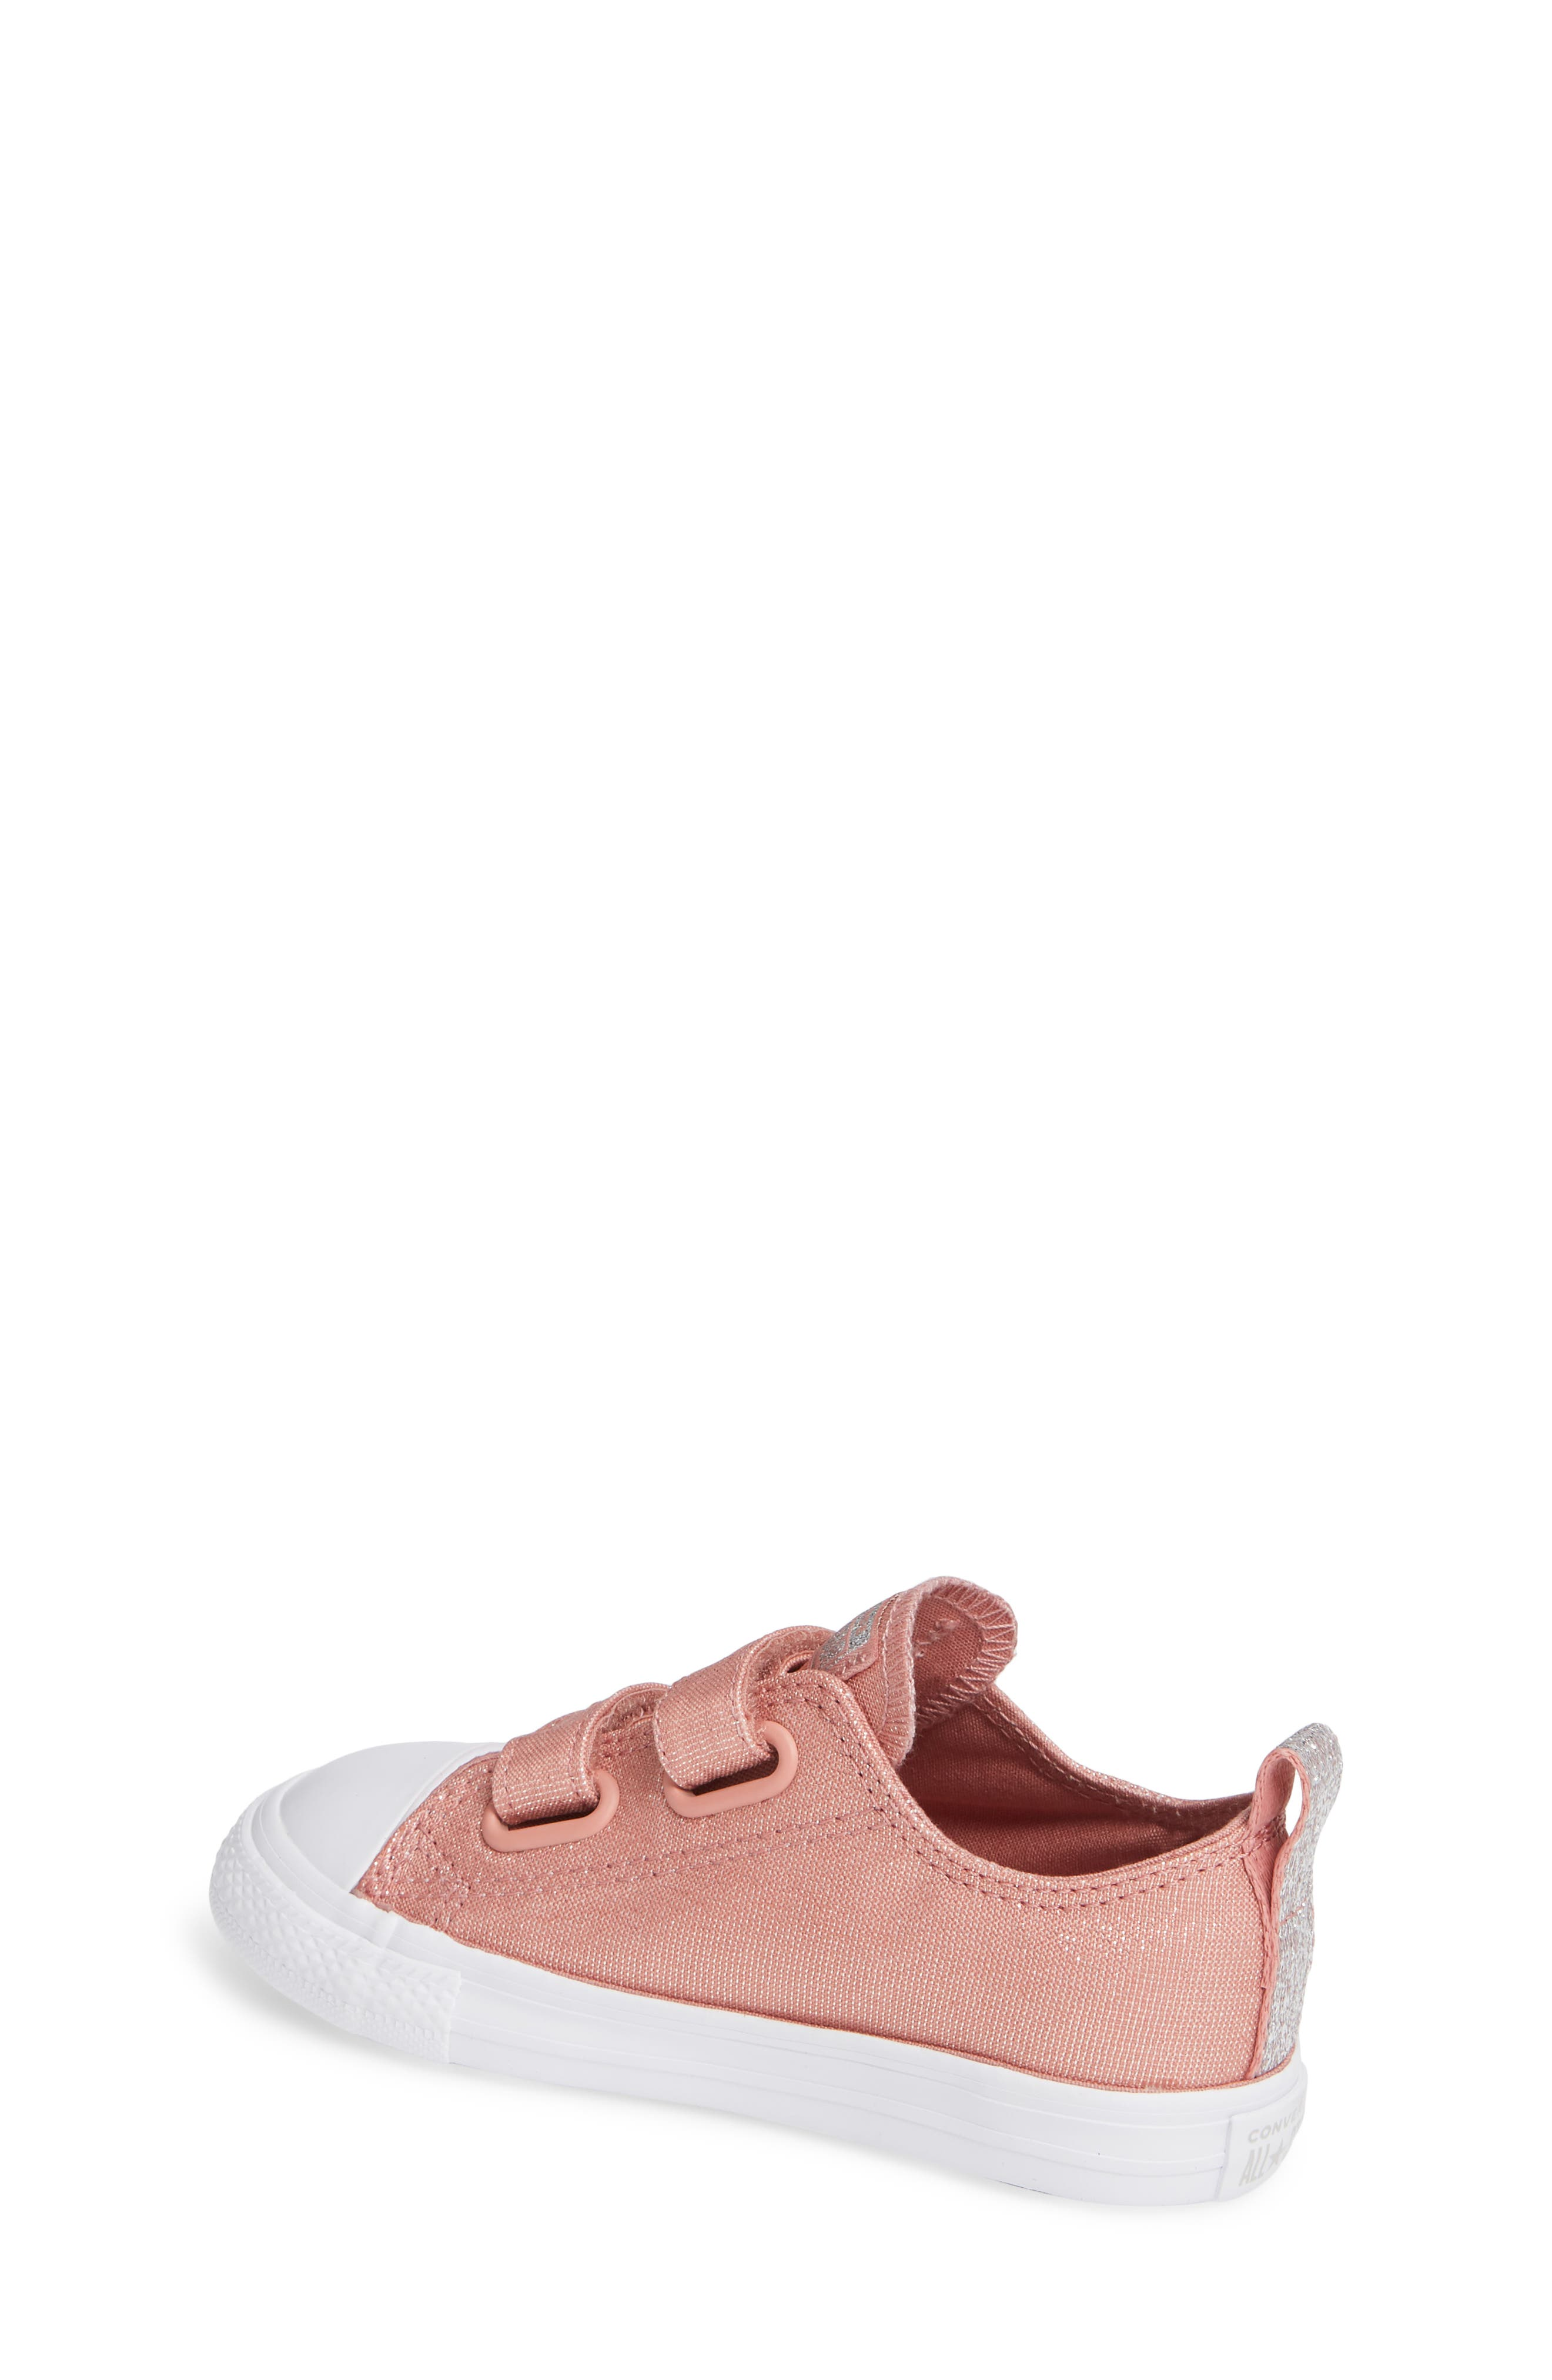 All Star<sup>®</sup> Fairy Dust Sneaker,                             Alternate thumbnail 2, color,                             RUST PINK